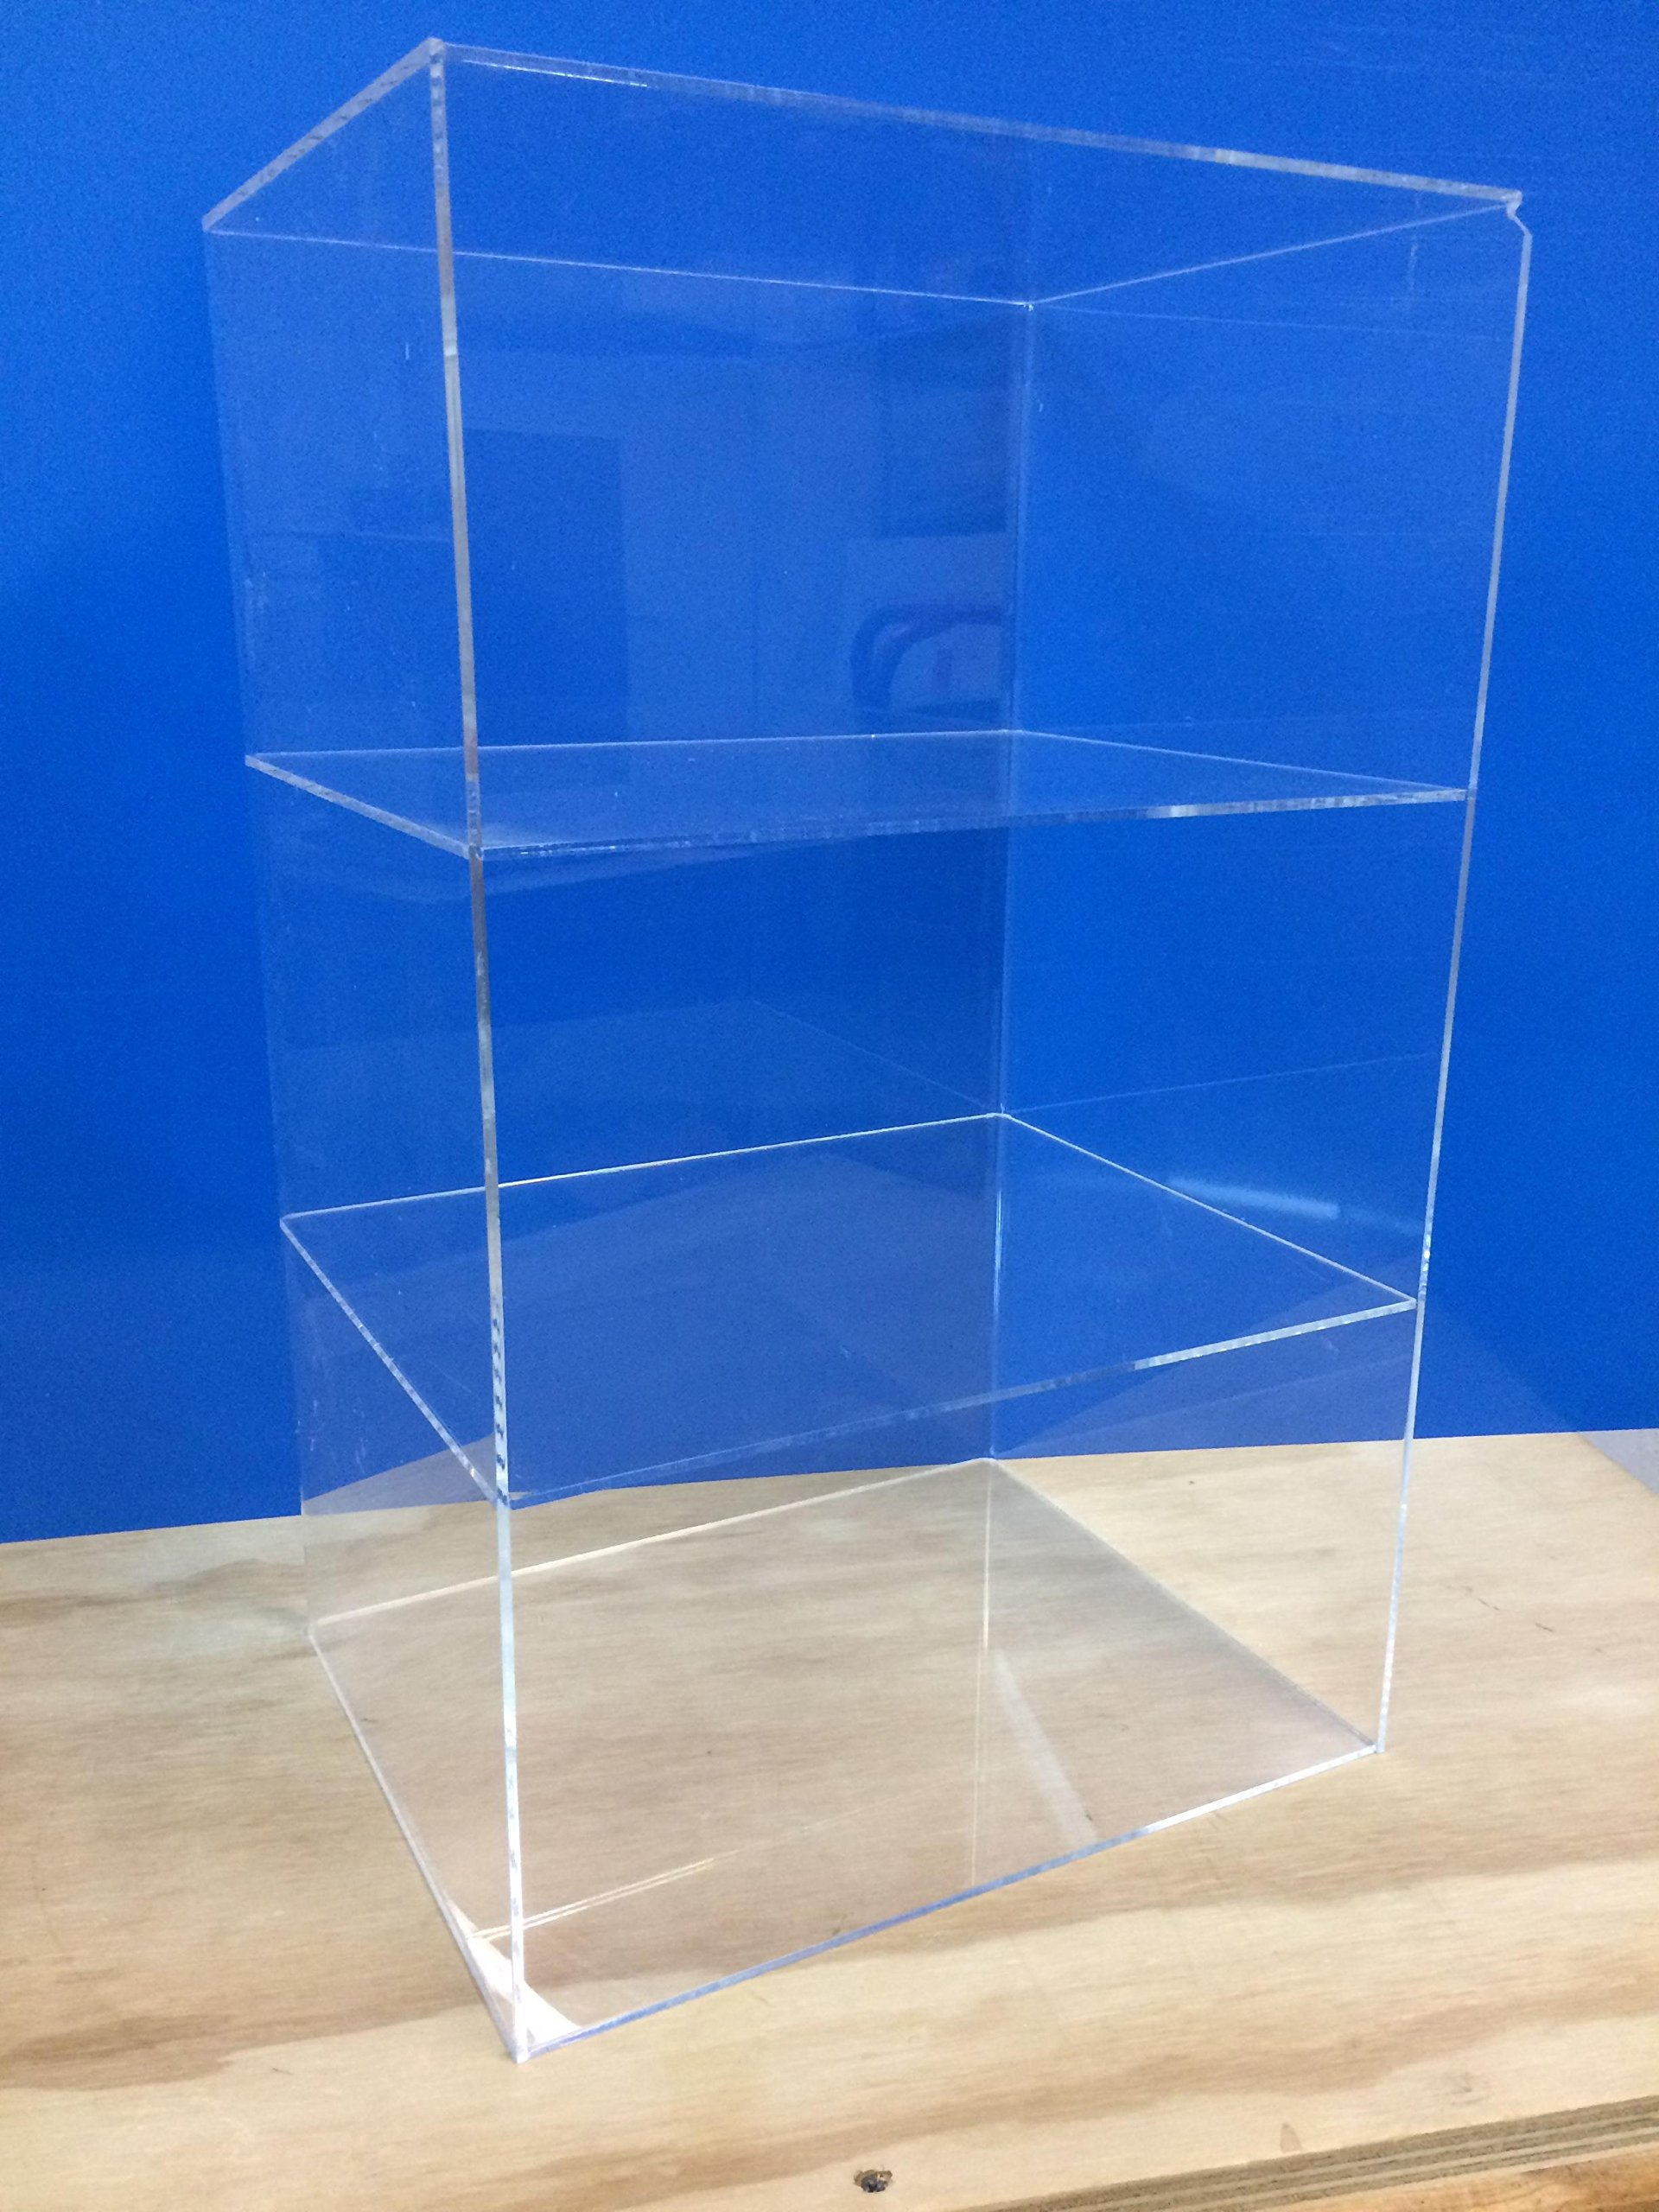 LuciteDisplay Acrylic Lucite Countertop Display ShowCase Cabinet 12'' x 9.5'' x 19''h 2 shelves